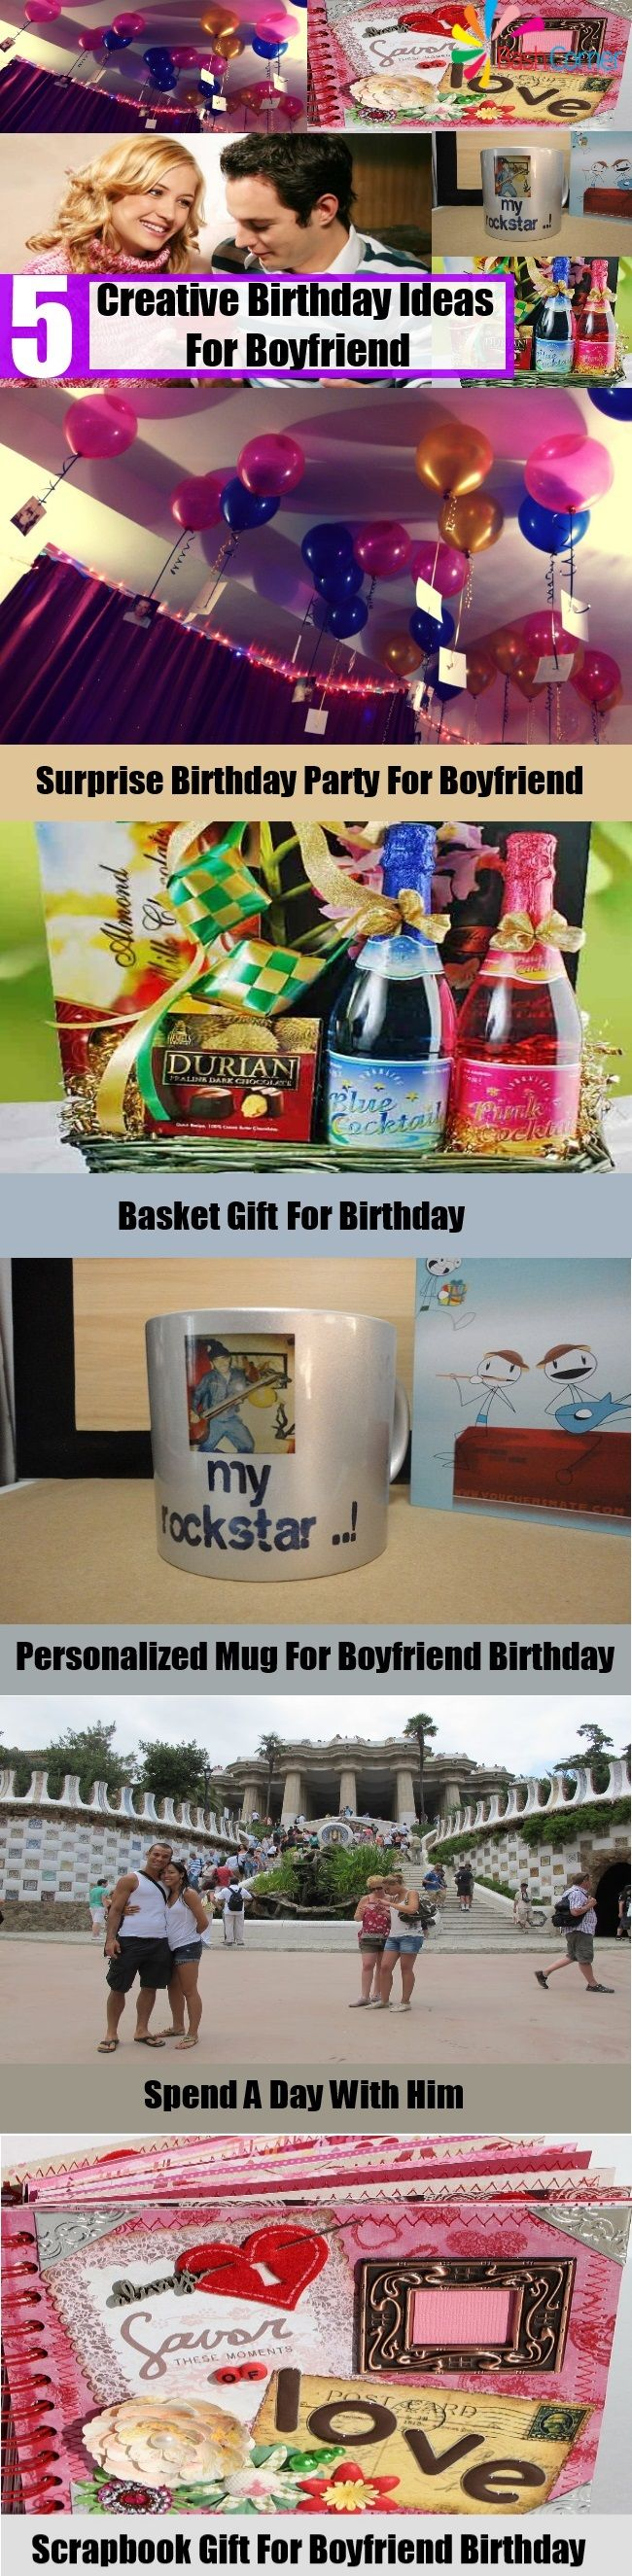 5 Creative Birthday Ideas For Boyfriend Celebration Pinterest